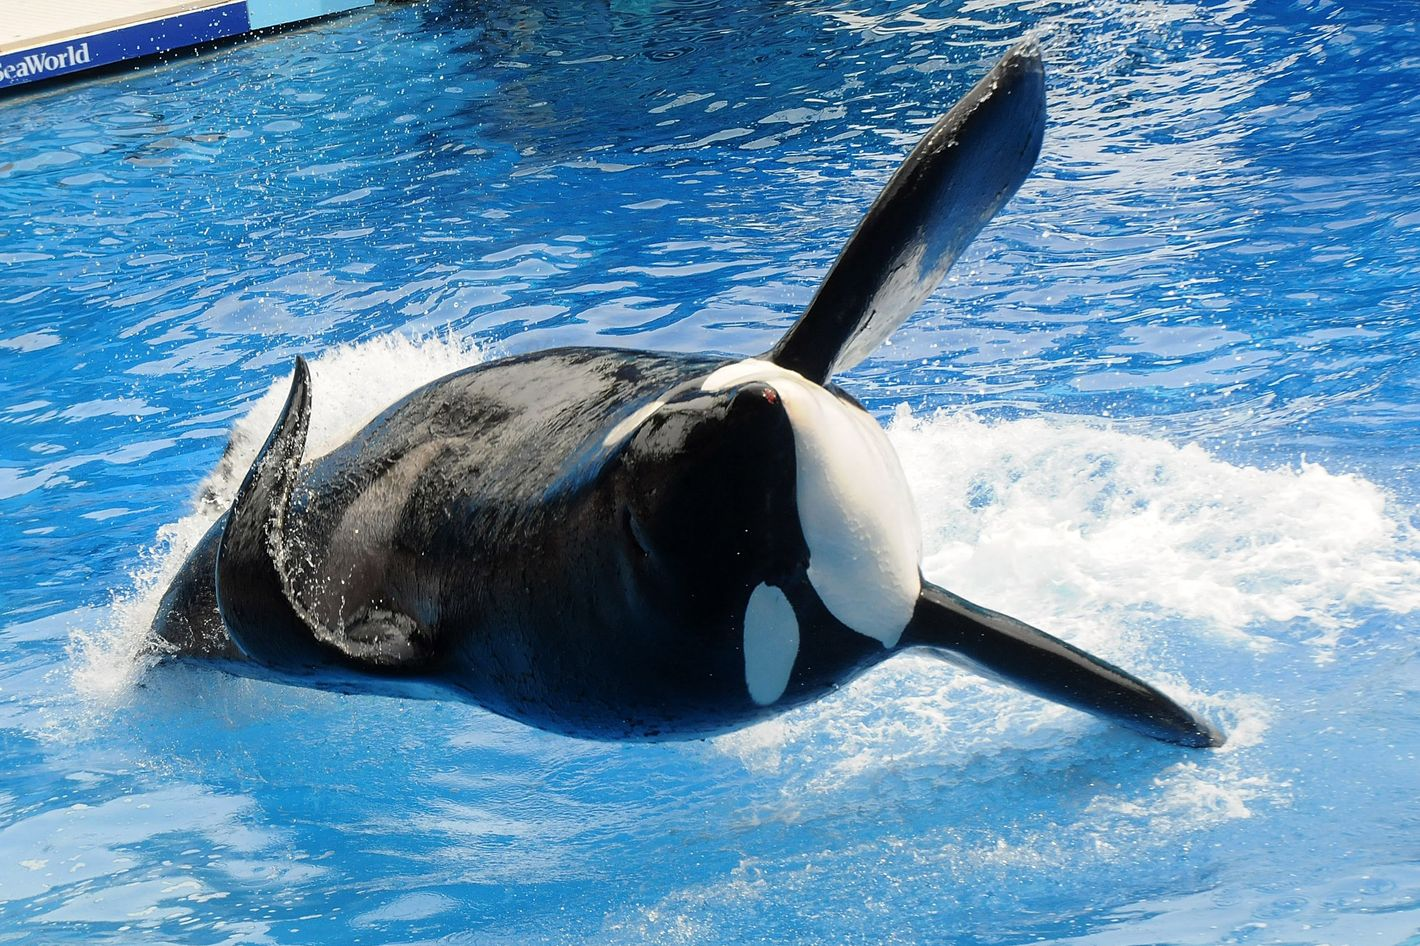 """Killer whale """"Tilikum"""" appears during its performance in its show """"Believe"""" at Sea World on March 30, 2011 in Orlando, Florida."""